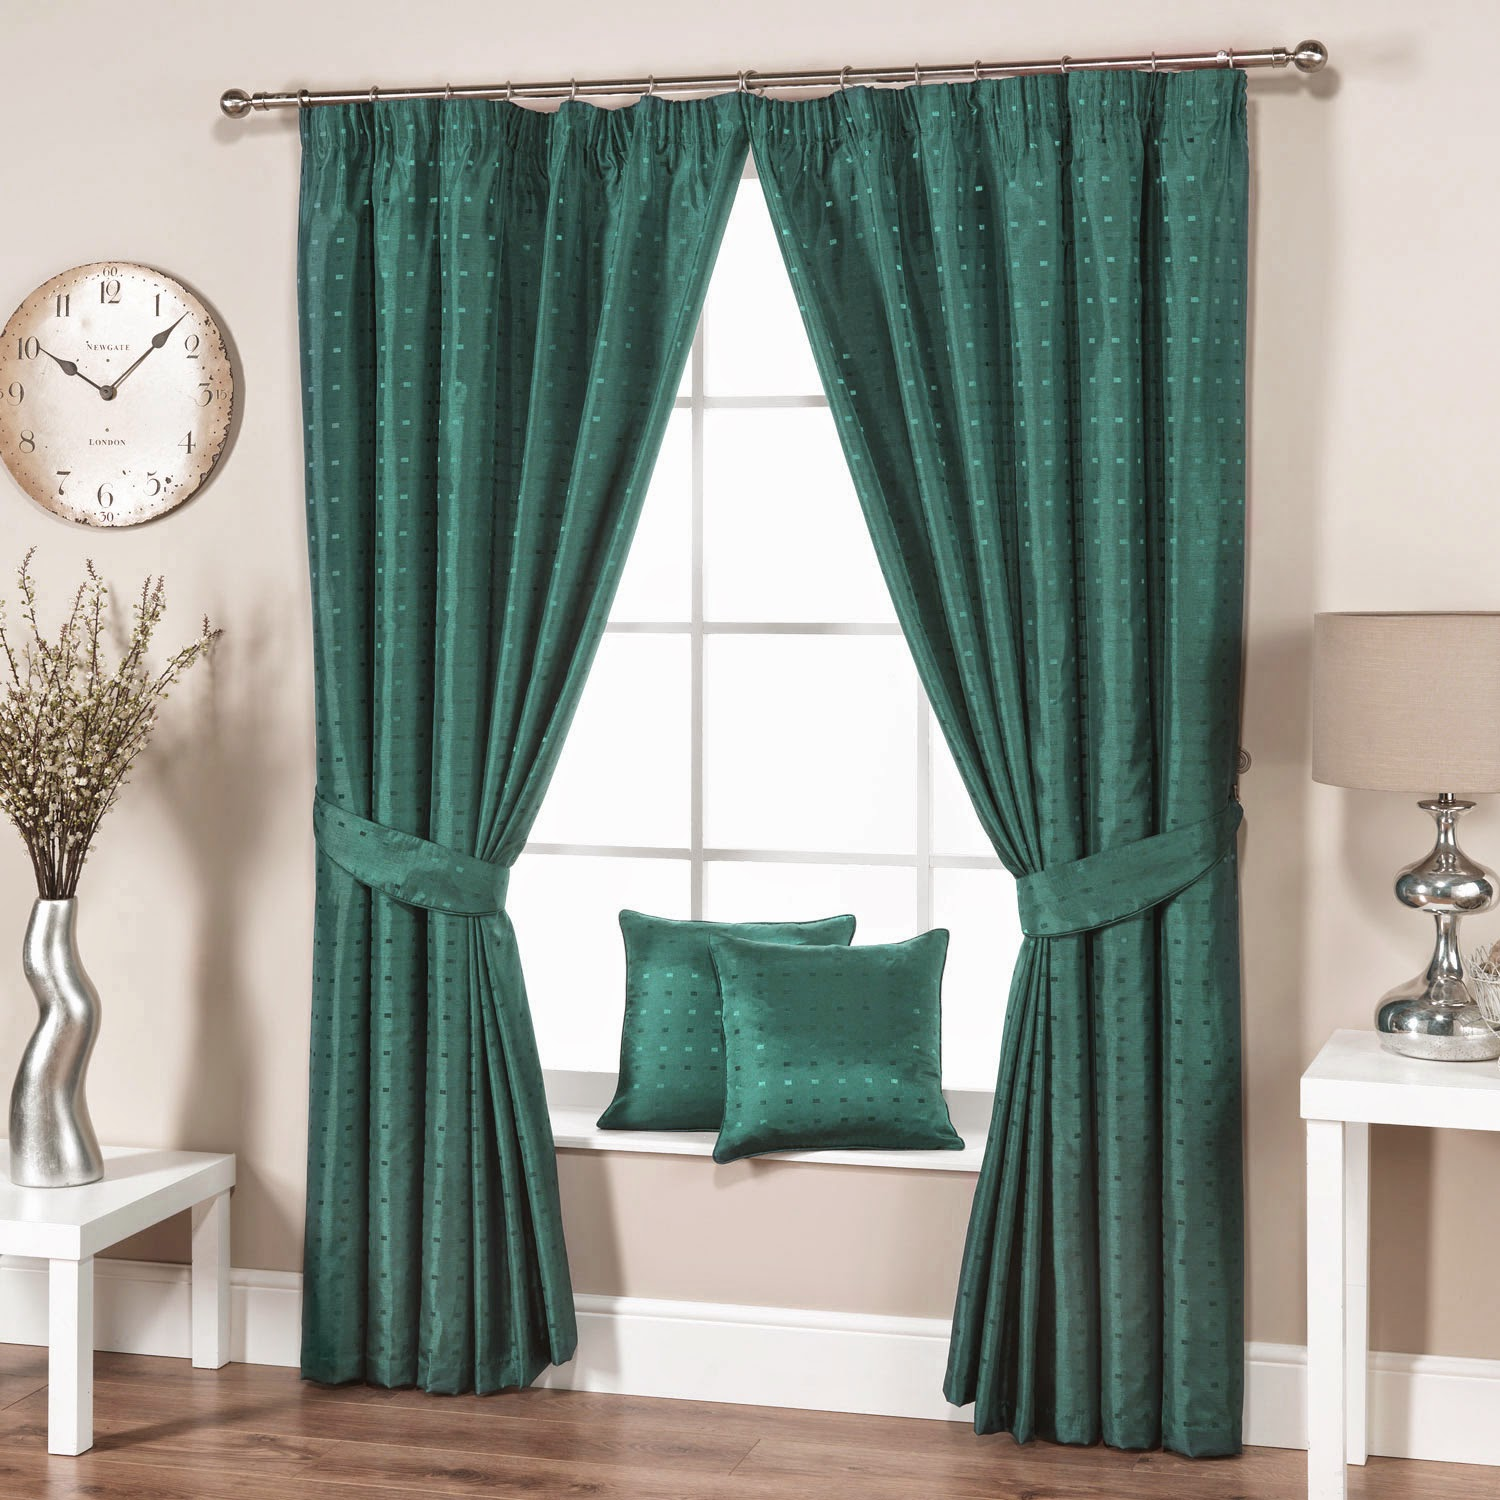 green living room curtains for modern interior. Black Bedroom Furniture Sets. Home Design Ideas